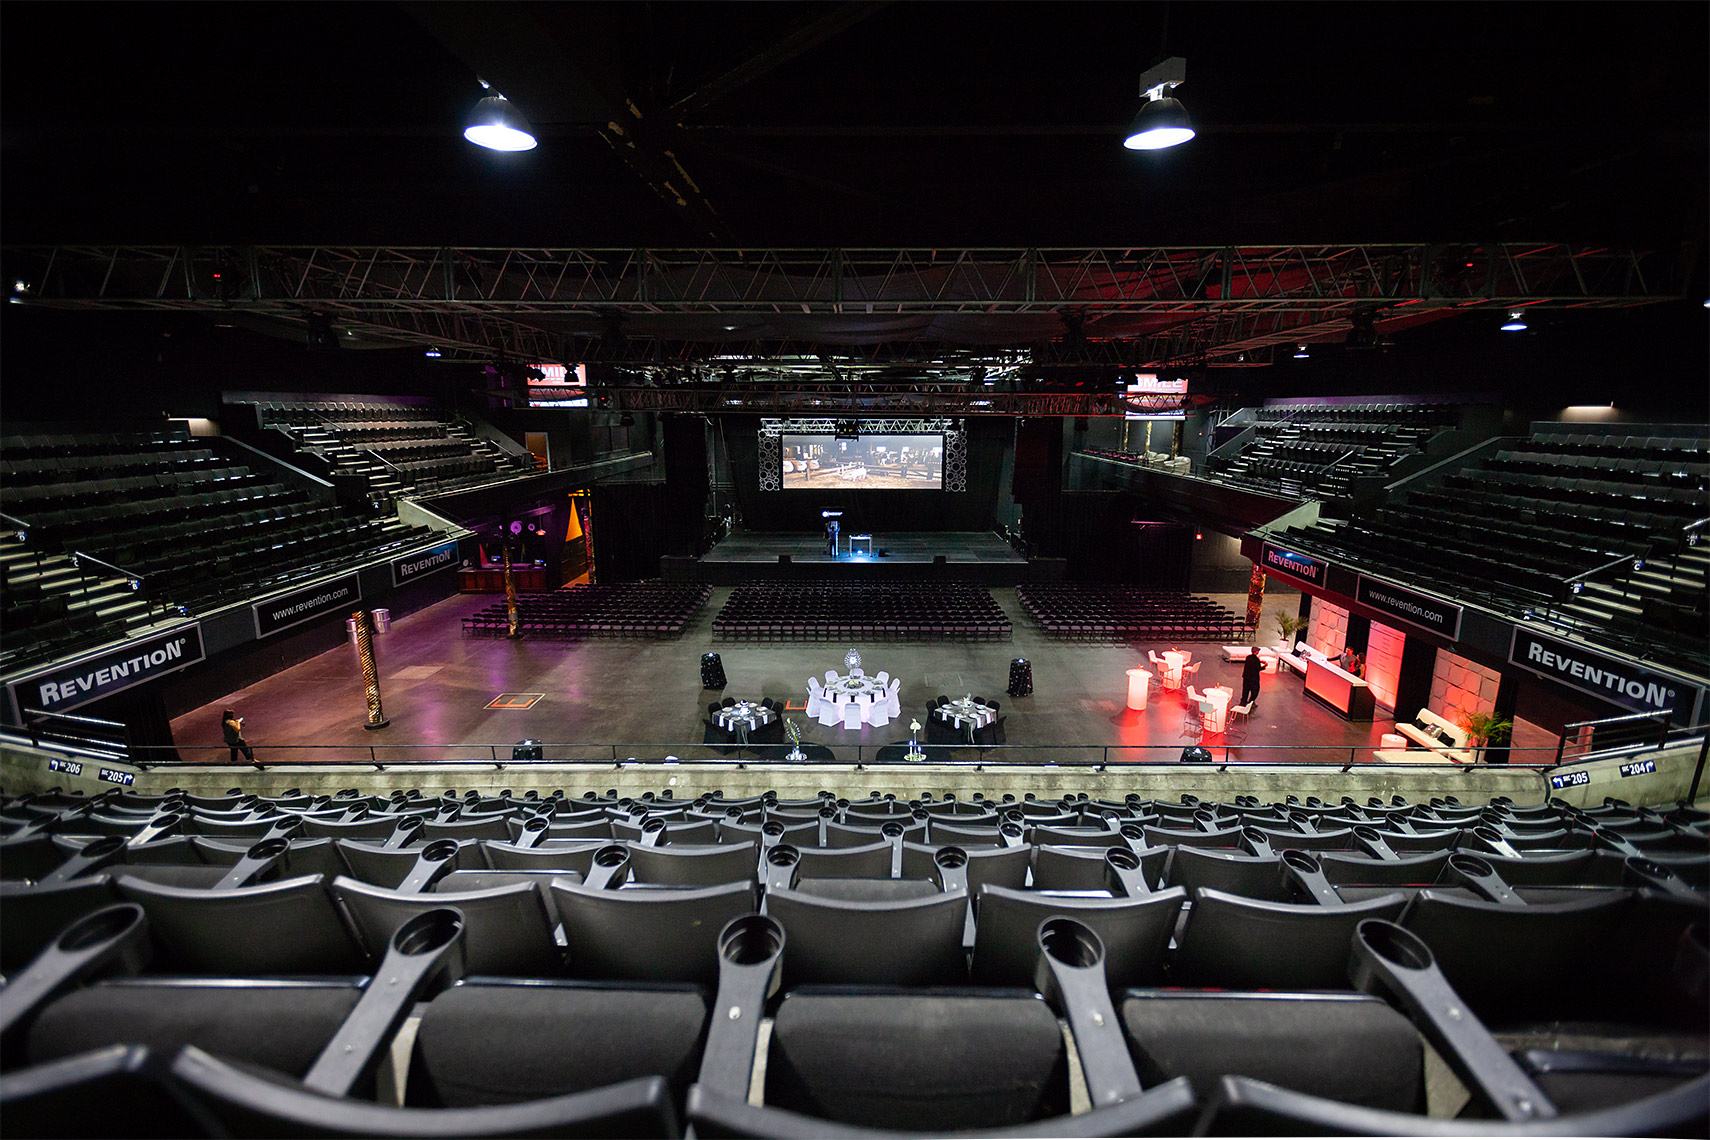 Revention-Music-Center-entertainment-venue-seating-Houston-architectural-photography